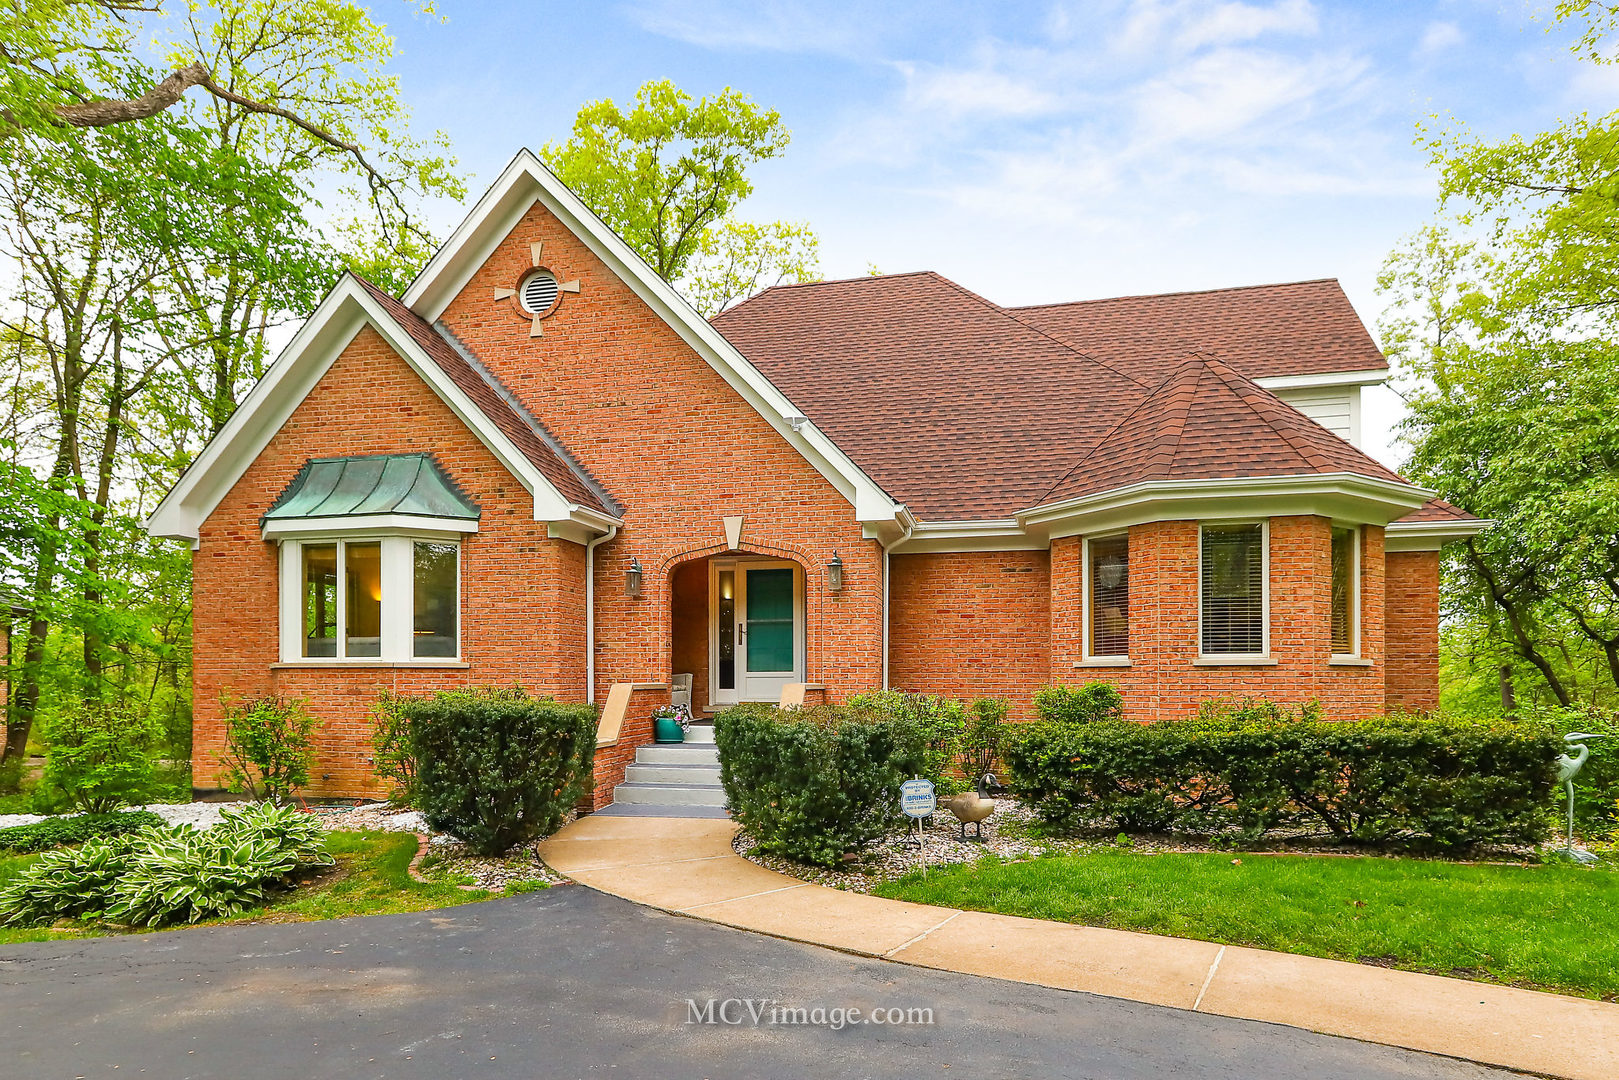 12438 Gunner Court, Homer Glen, Illinois